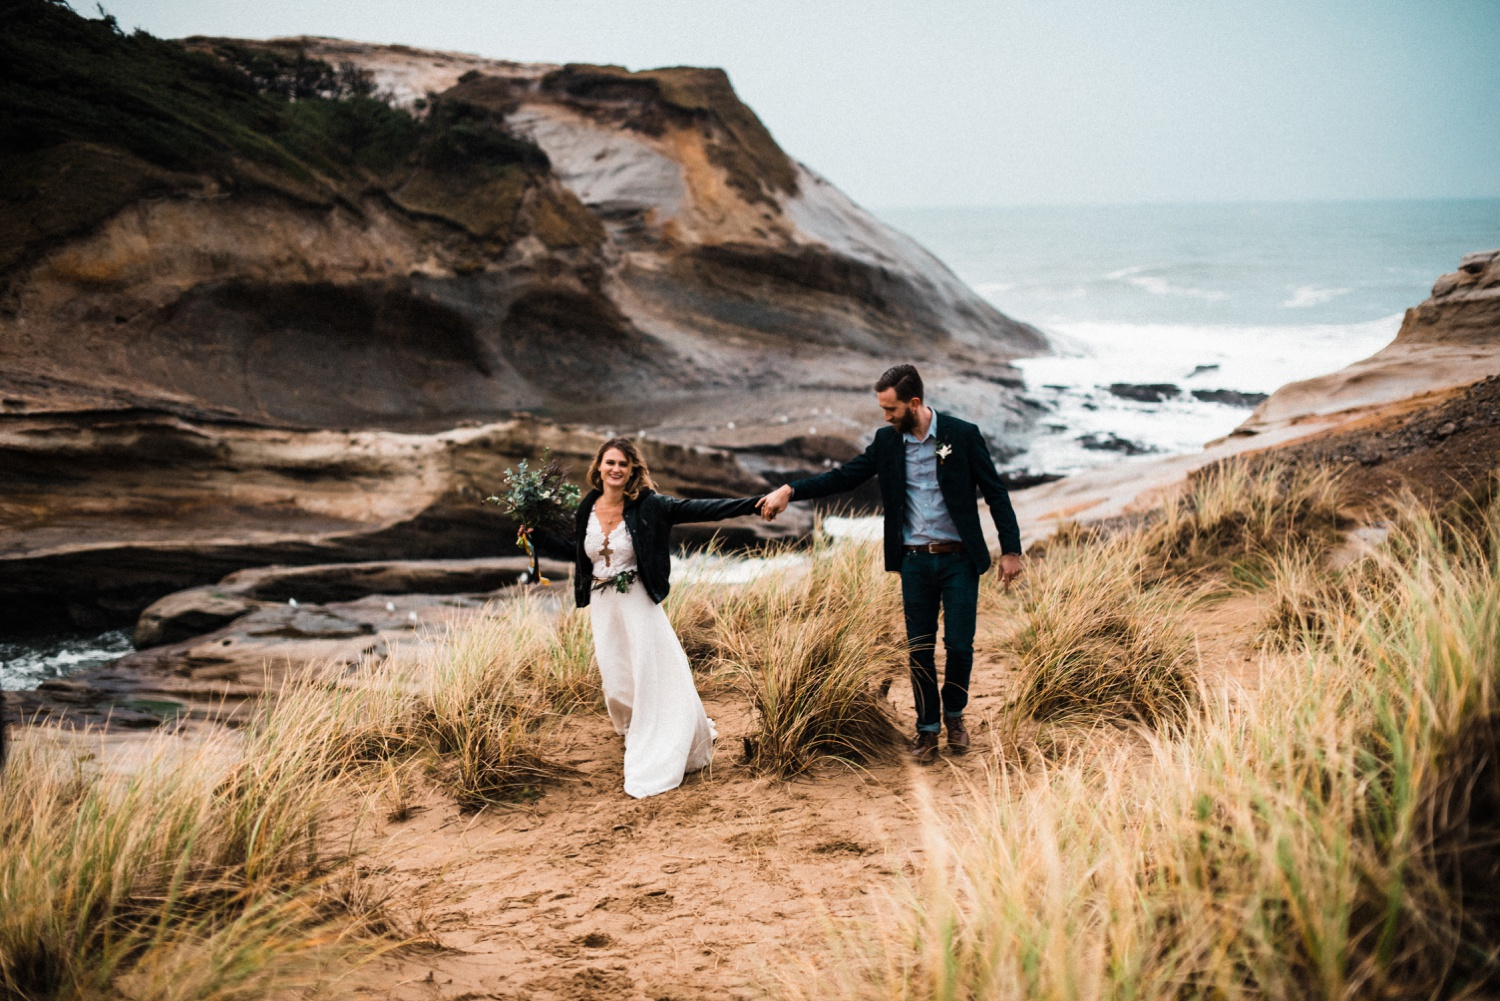 Oregon_Coast_Elopement_Wedding_The_Foxes_Photography_128.jpg